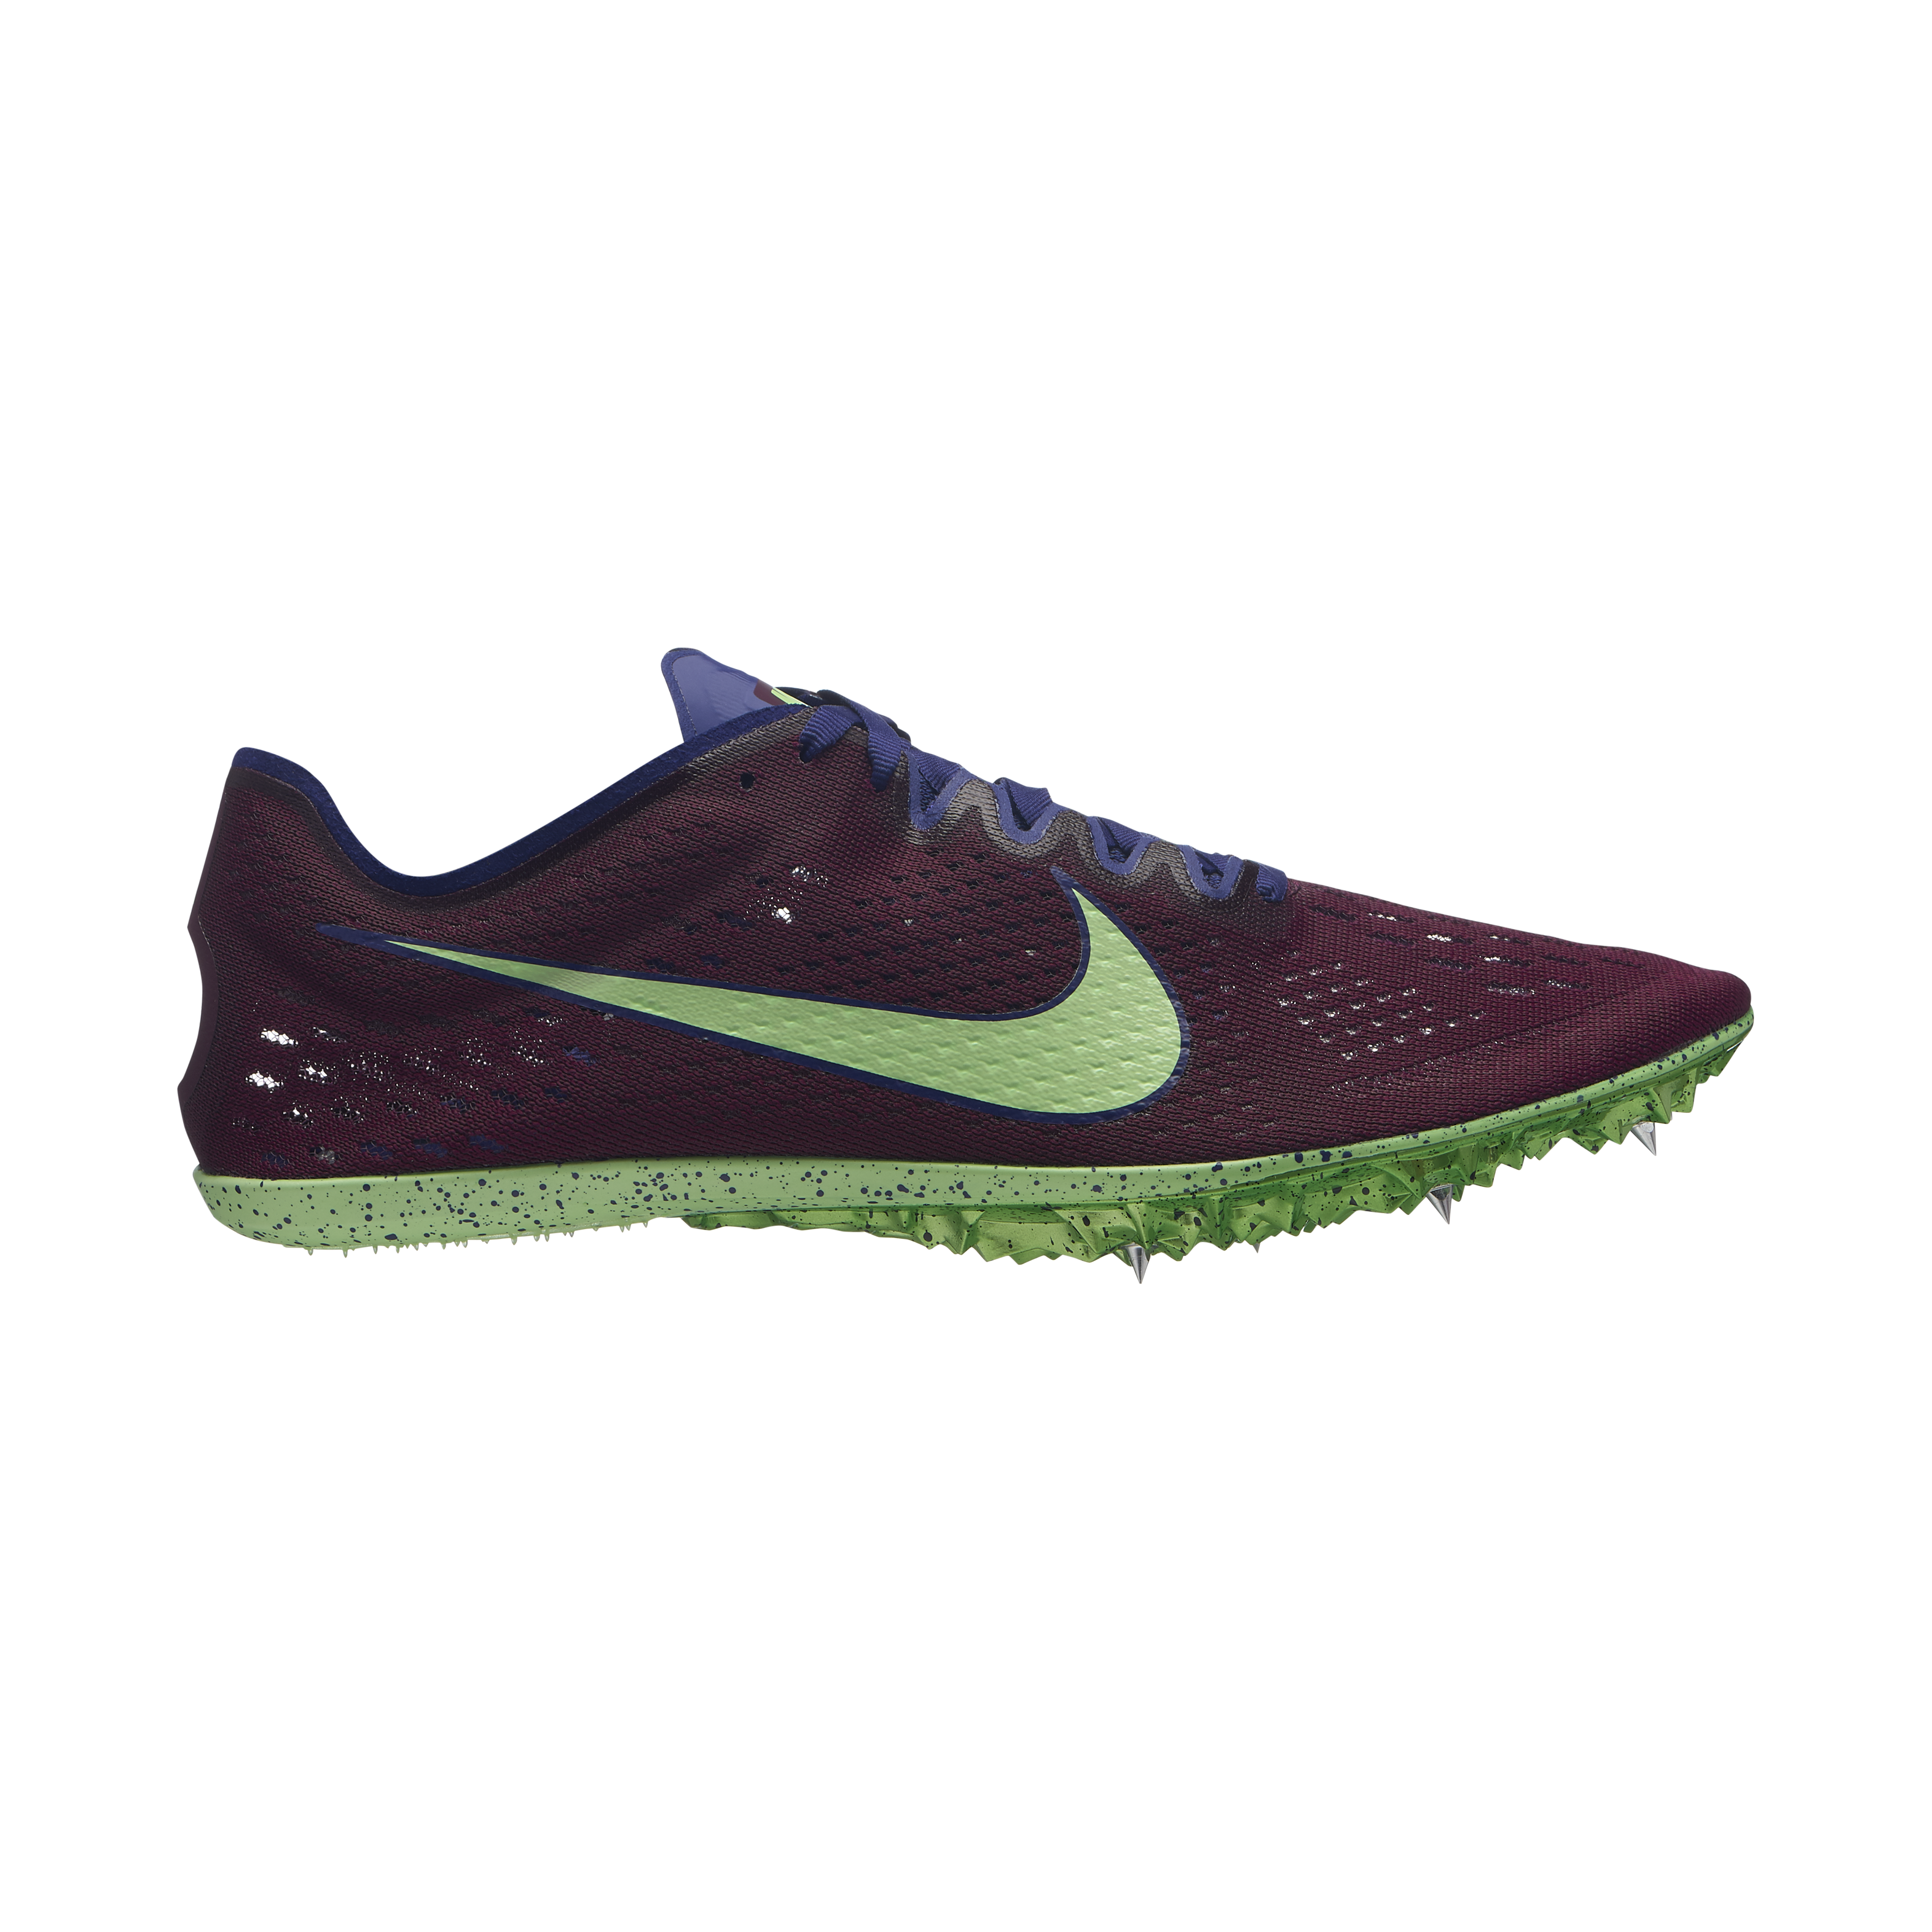 New Nike Zoom Victory Elite 2 Mens Track /& Field Spikes Distance Running Shoes